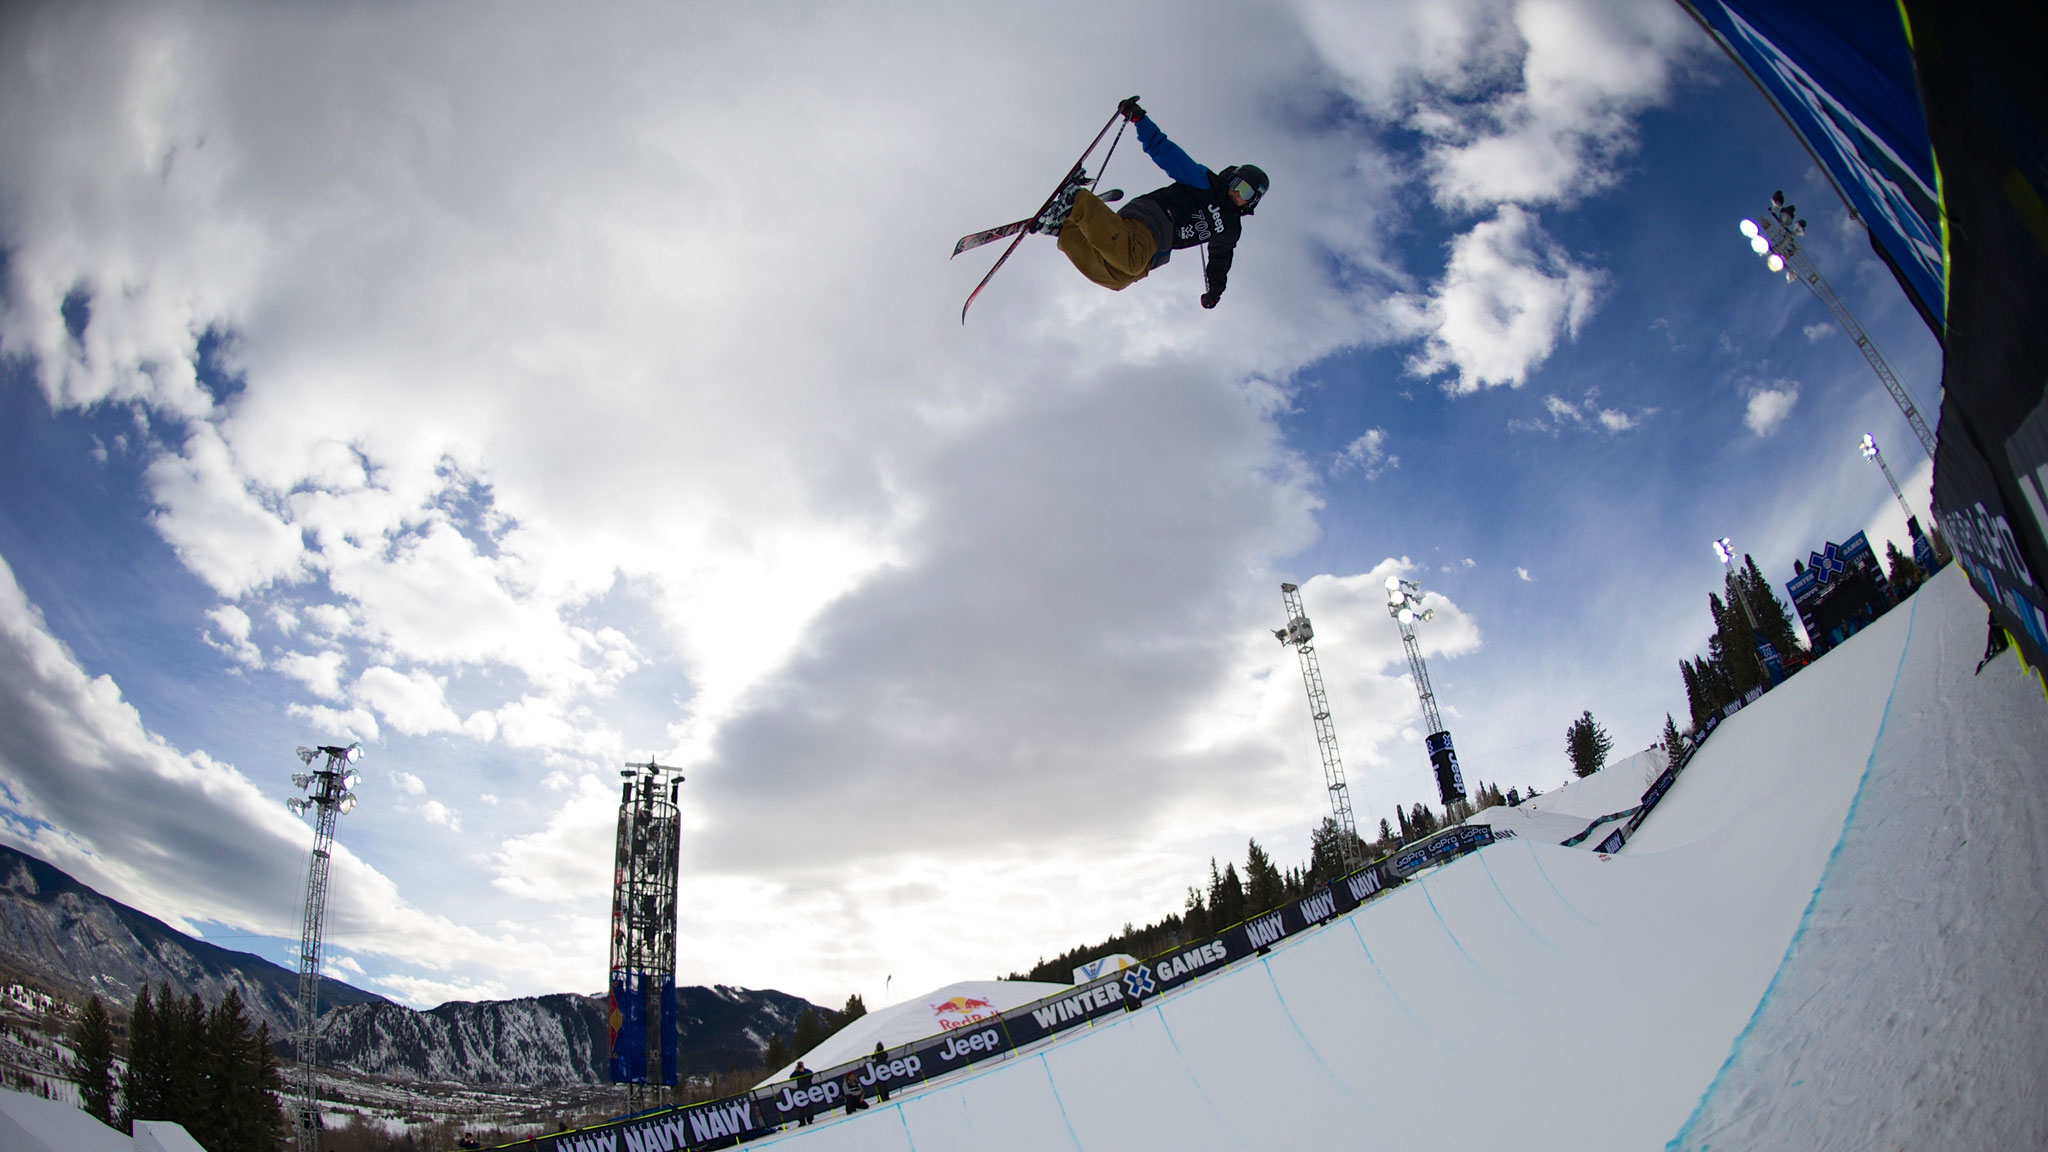 Aaron Blunck was a rookie at X Games Aspen last year. Now he's a top Ski SuperPipe contender.